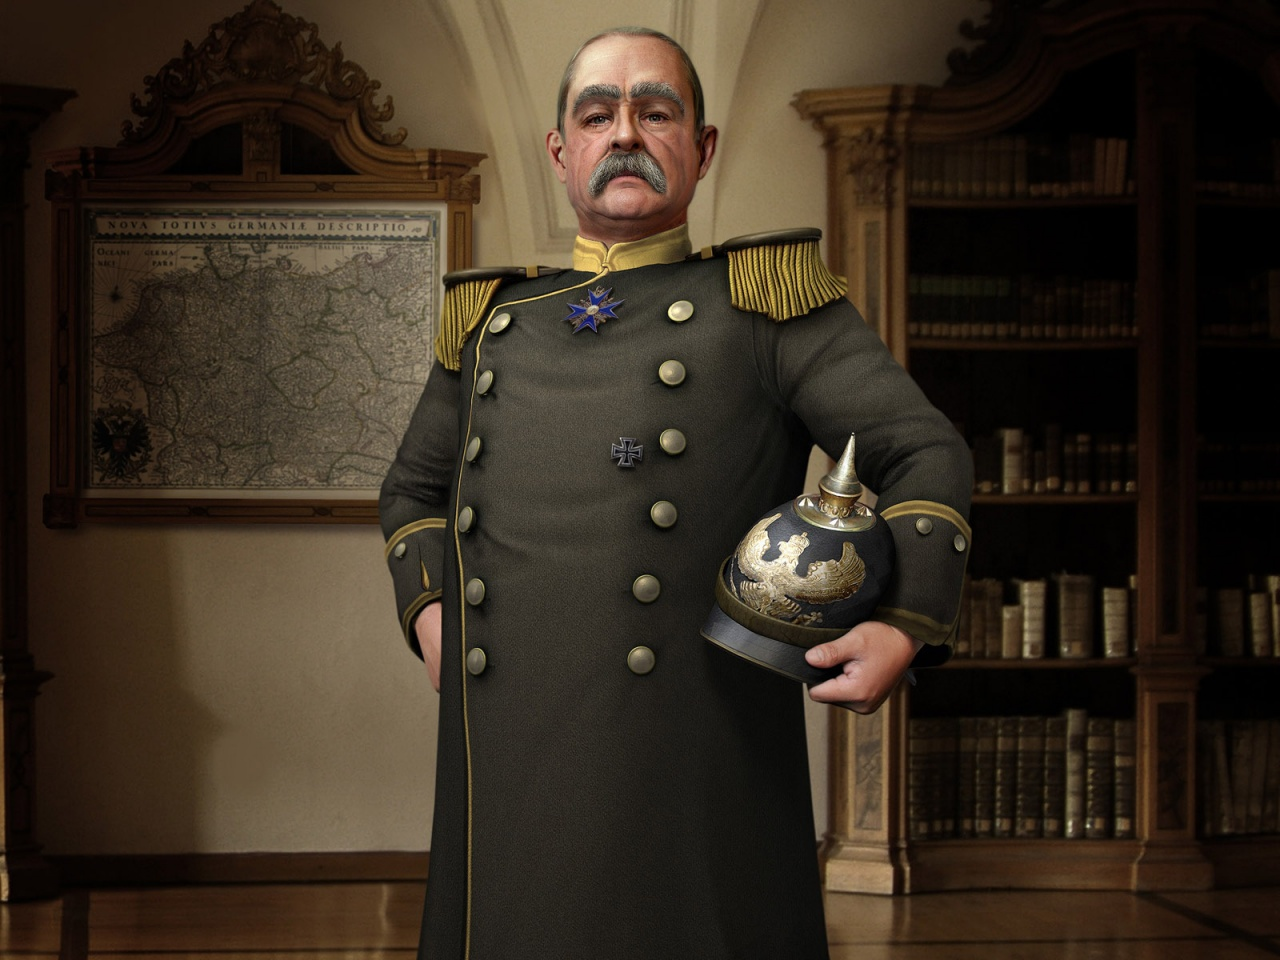 1280x960 Sid Meier's Civilization V Leaders, game, walls